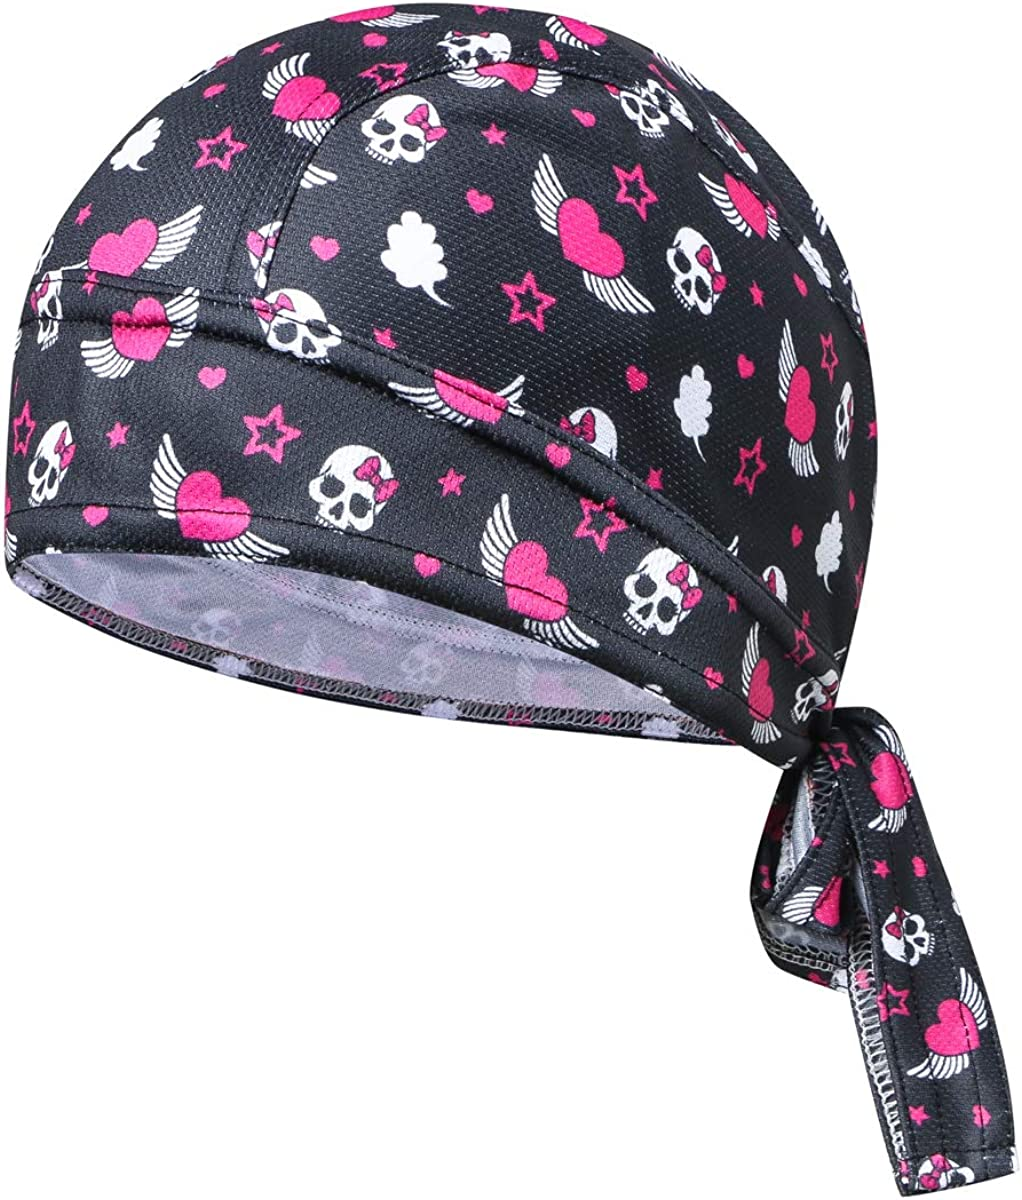 JPOJPO Cycling Hat Wrap Rag Max 57% OFF Sweat Skull Wicking Quick Beanie Cap Deluxe